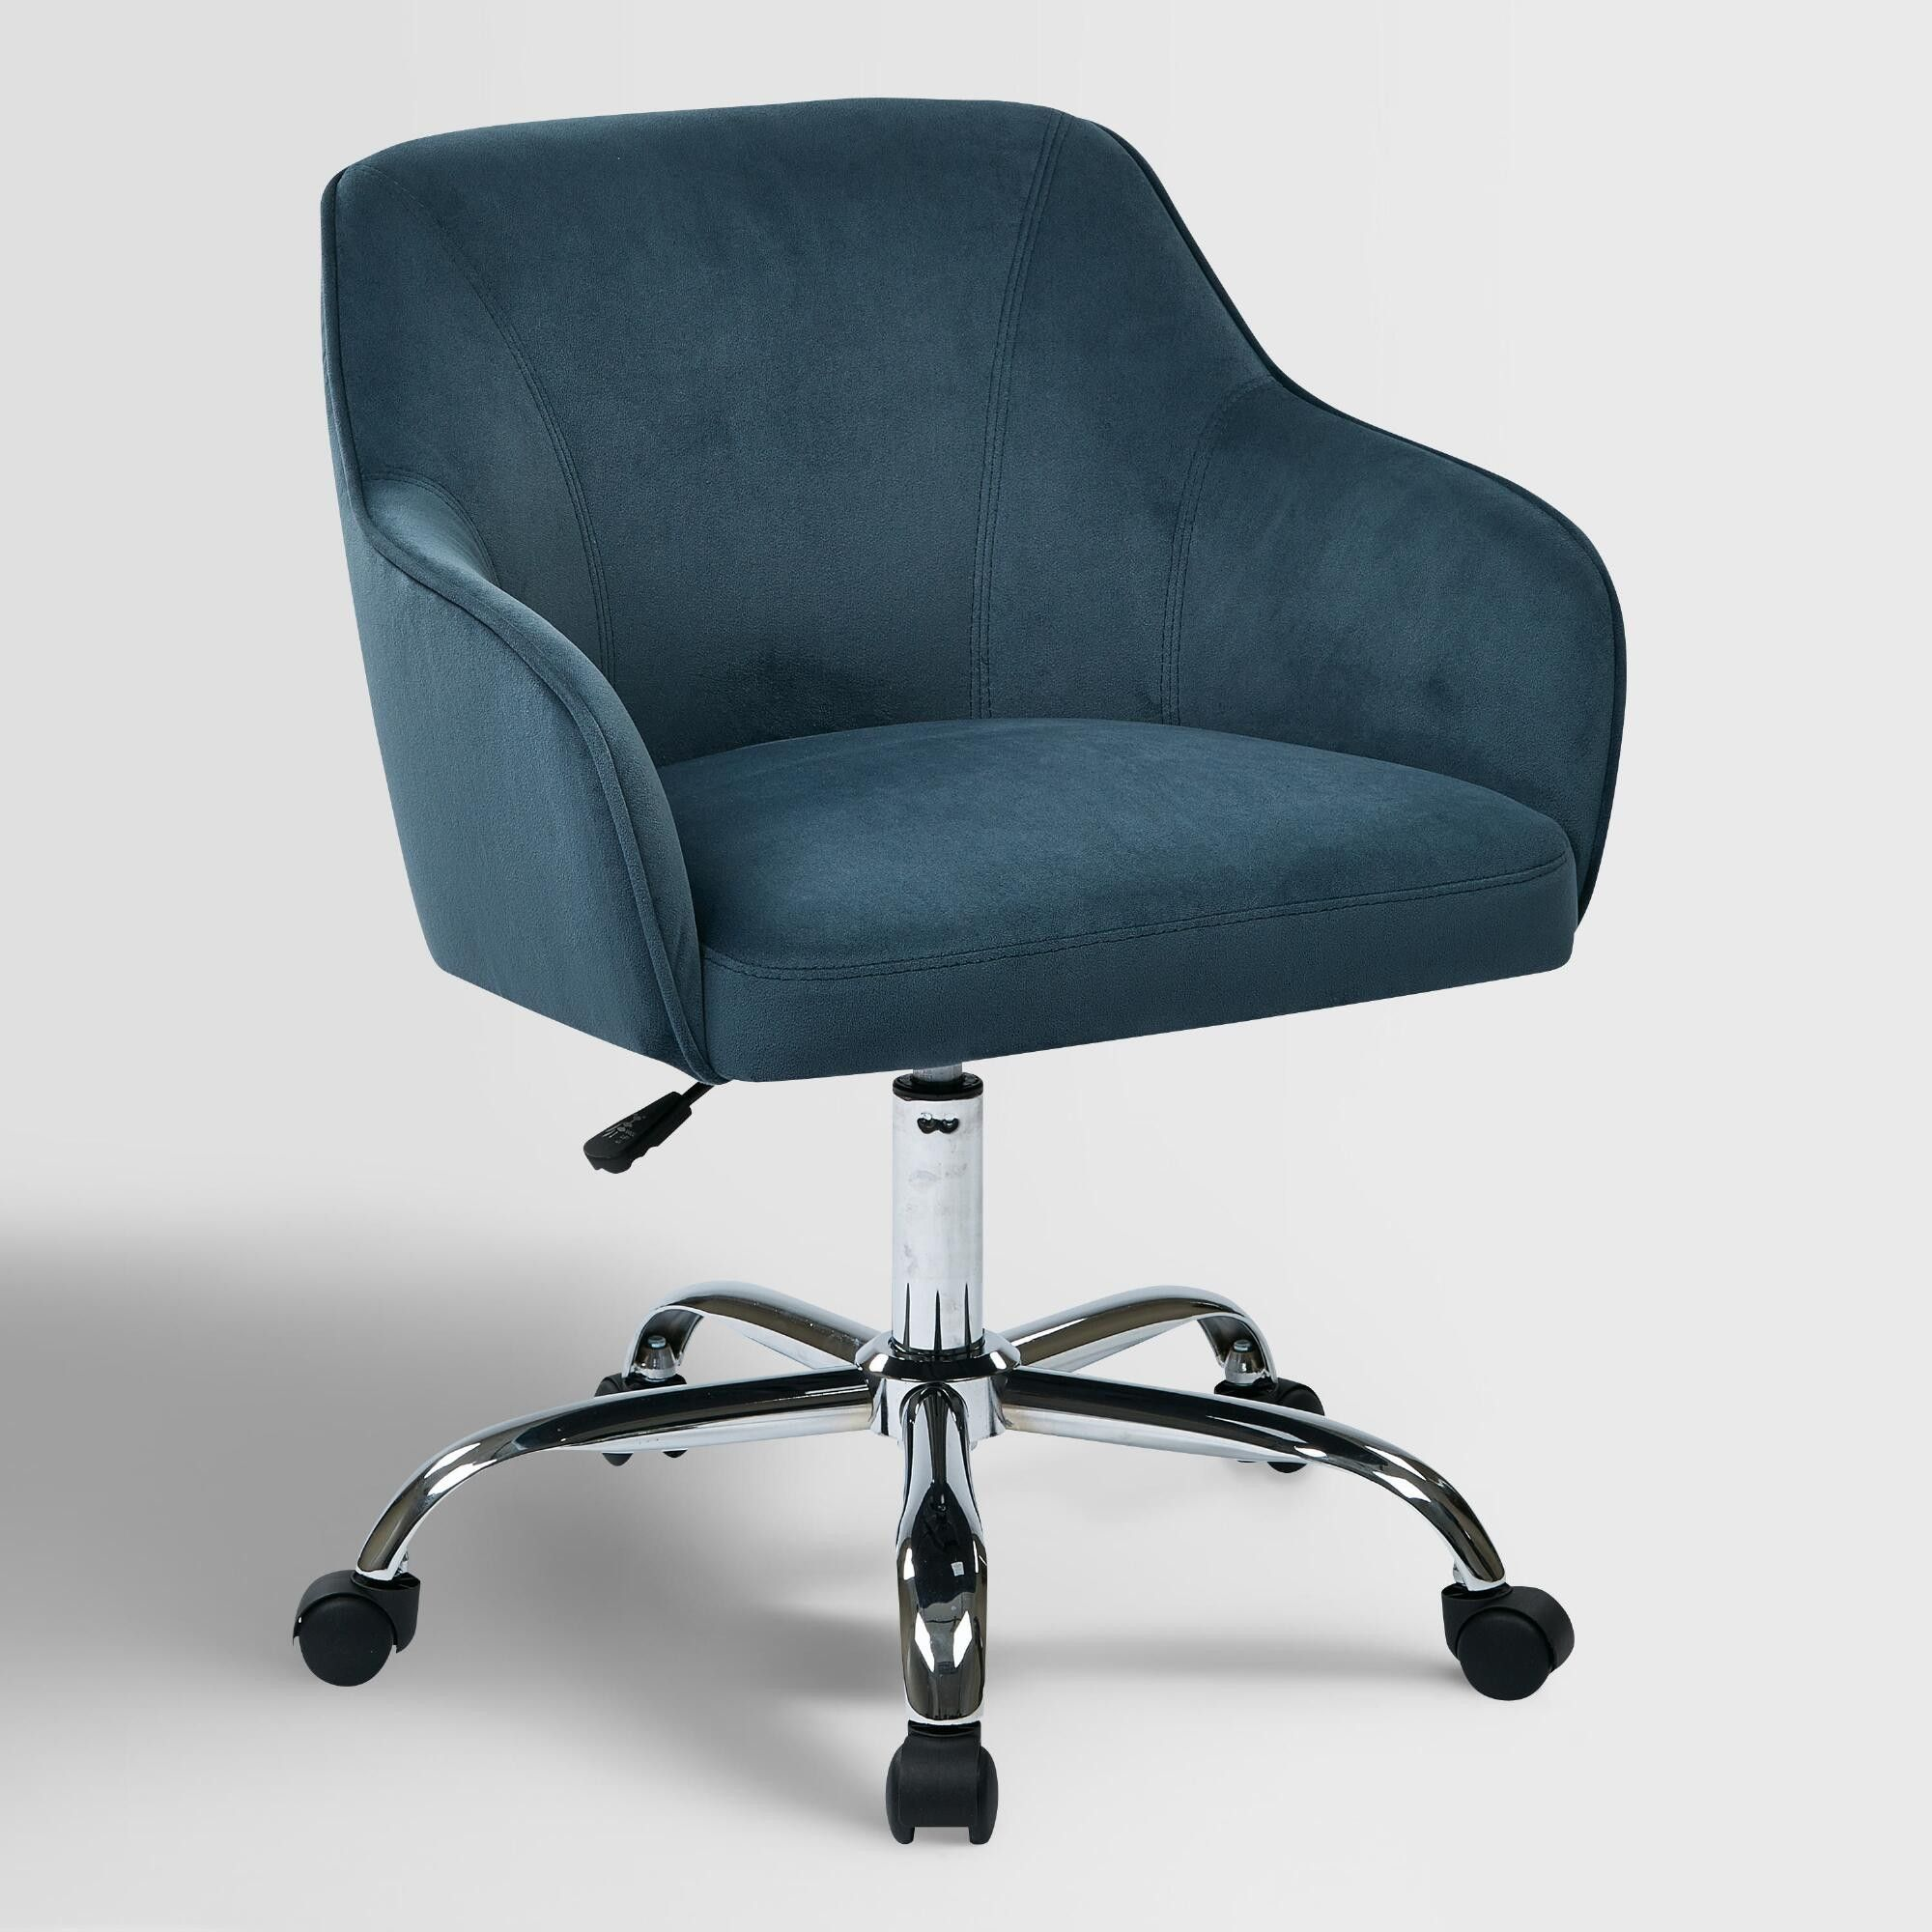 navy blue desk chair  check more at httpwwwgameintown. navy blue desk chair  check more at httpwwwgameintowncom